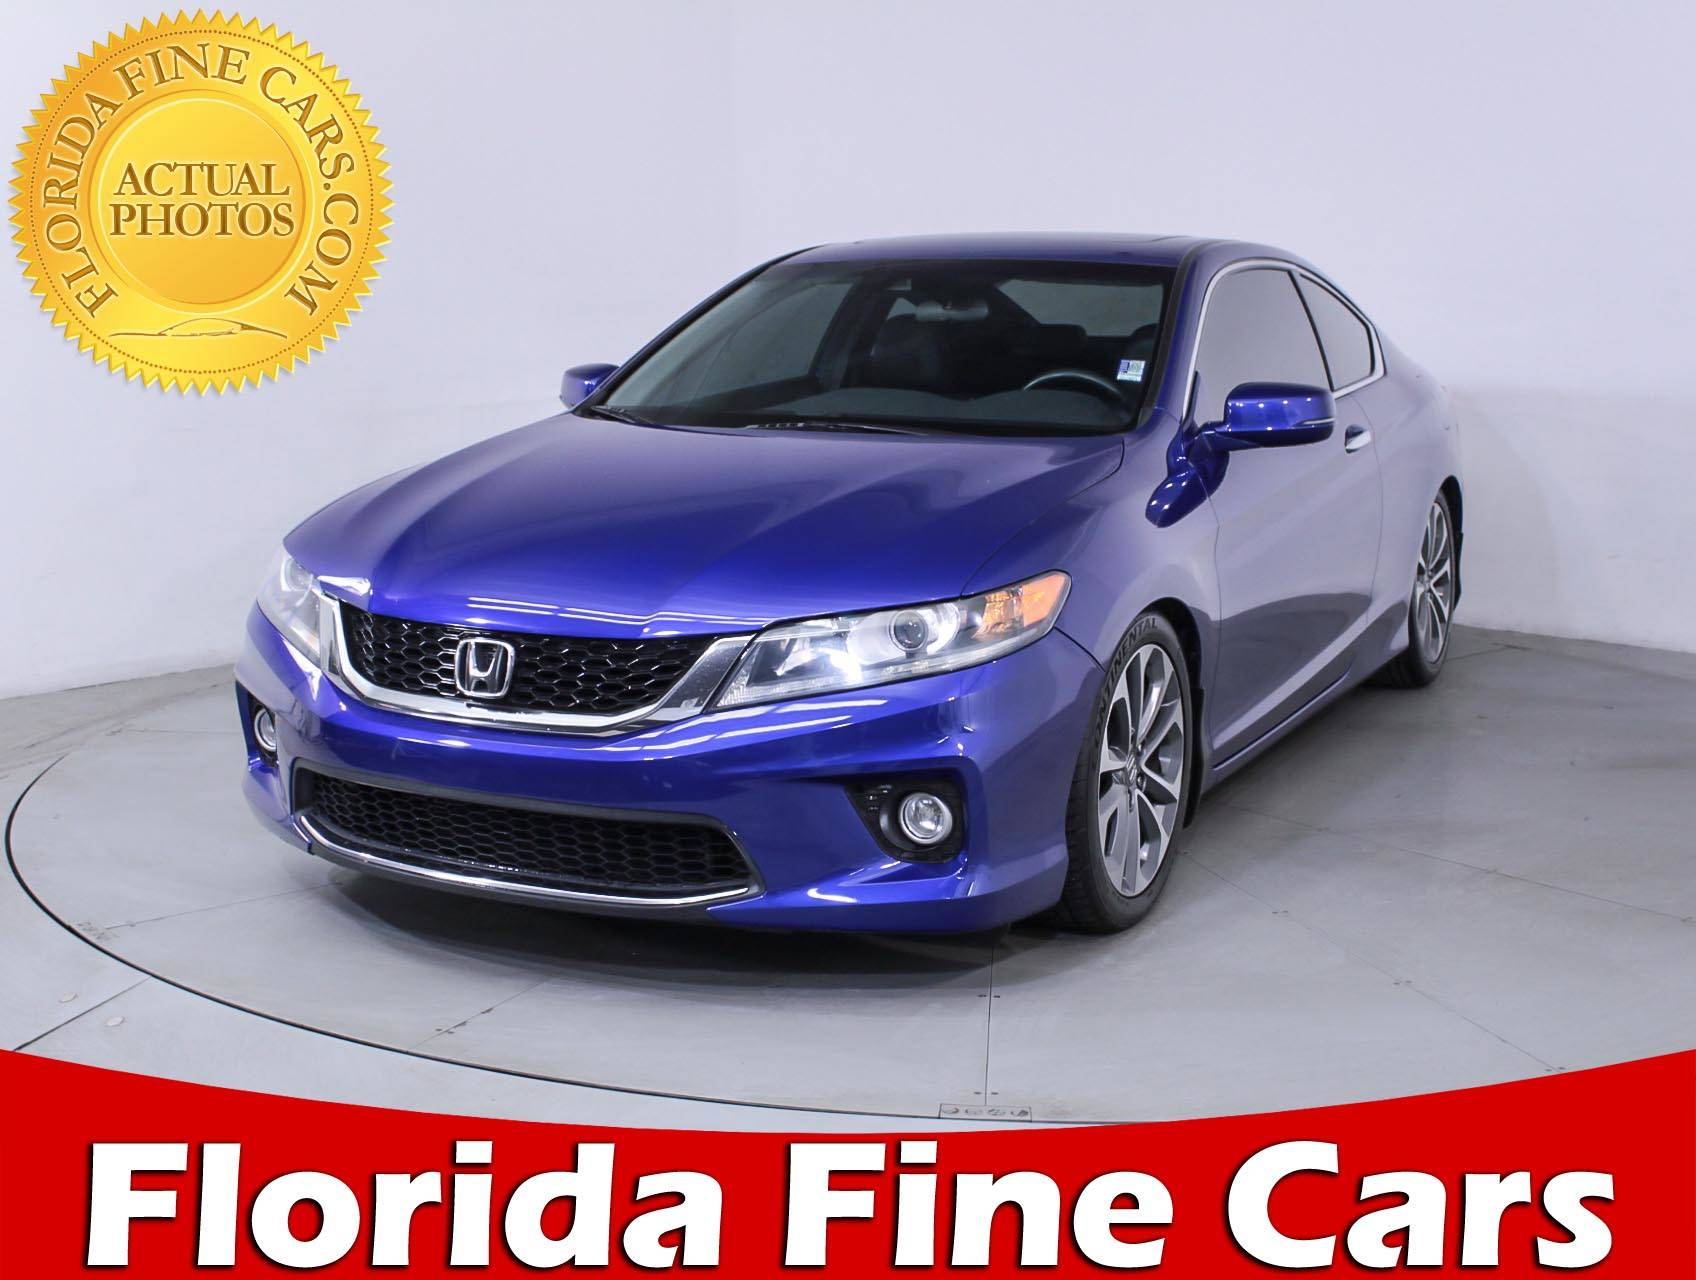 Used 2013 HONDA ACCORD EX L Coupe For Sale In HOLLYWOOD, FL | 86094 |  Florida Fine Cars